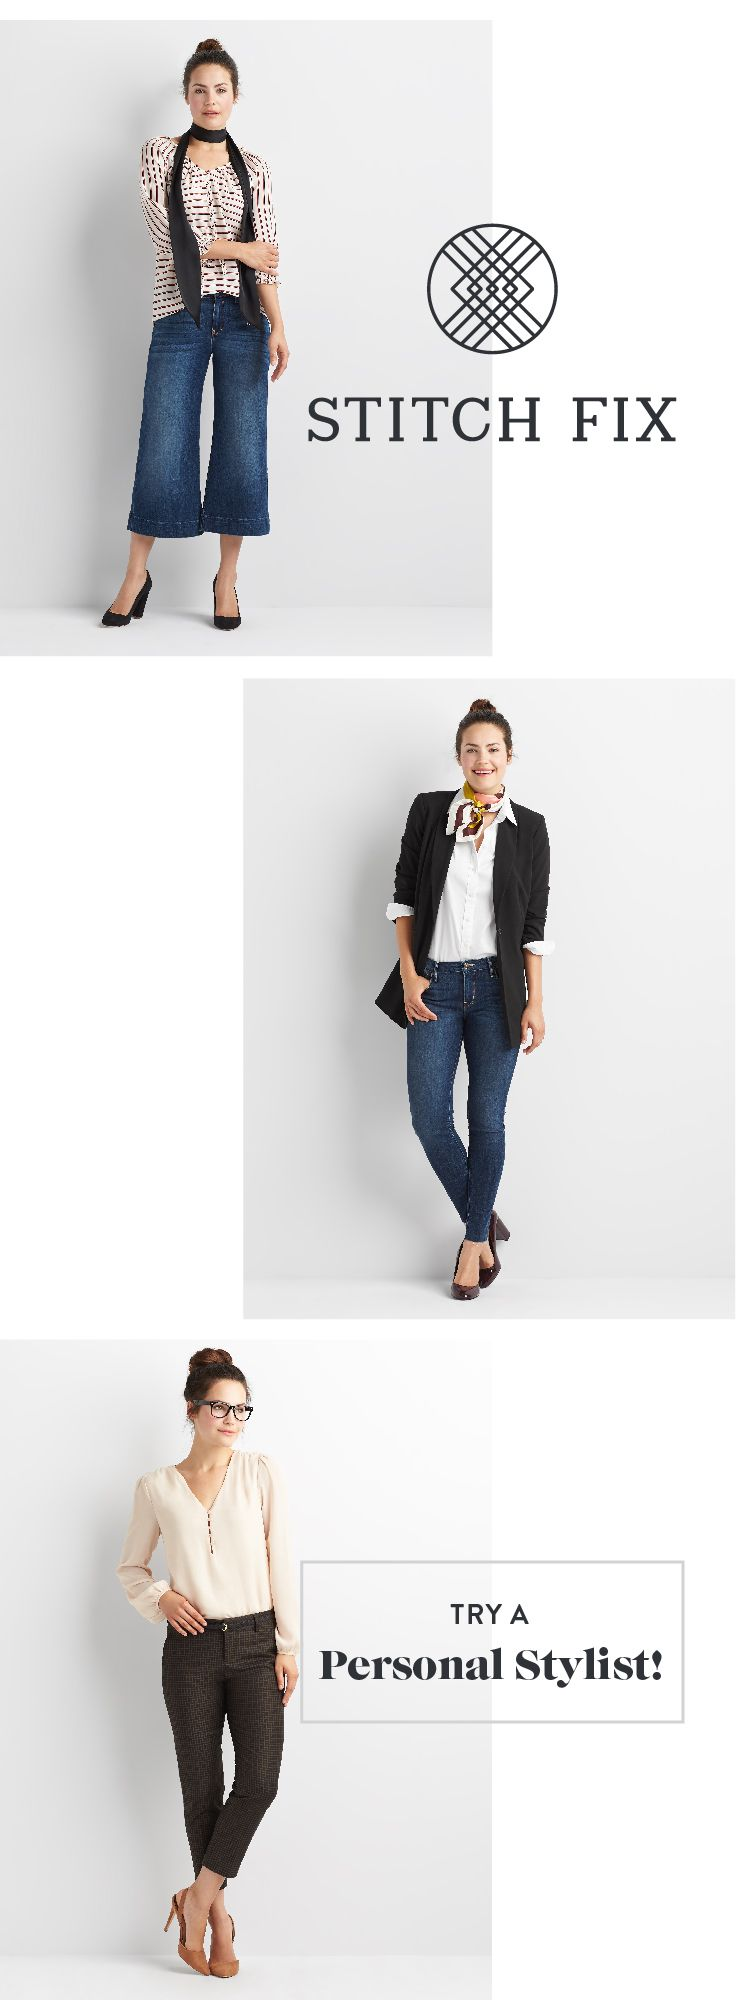 Try stitch fix! Just follow this link and sign up: https://www.stitchfix.com/referral/5747374